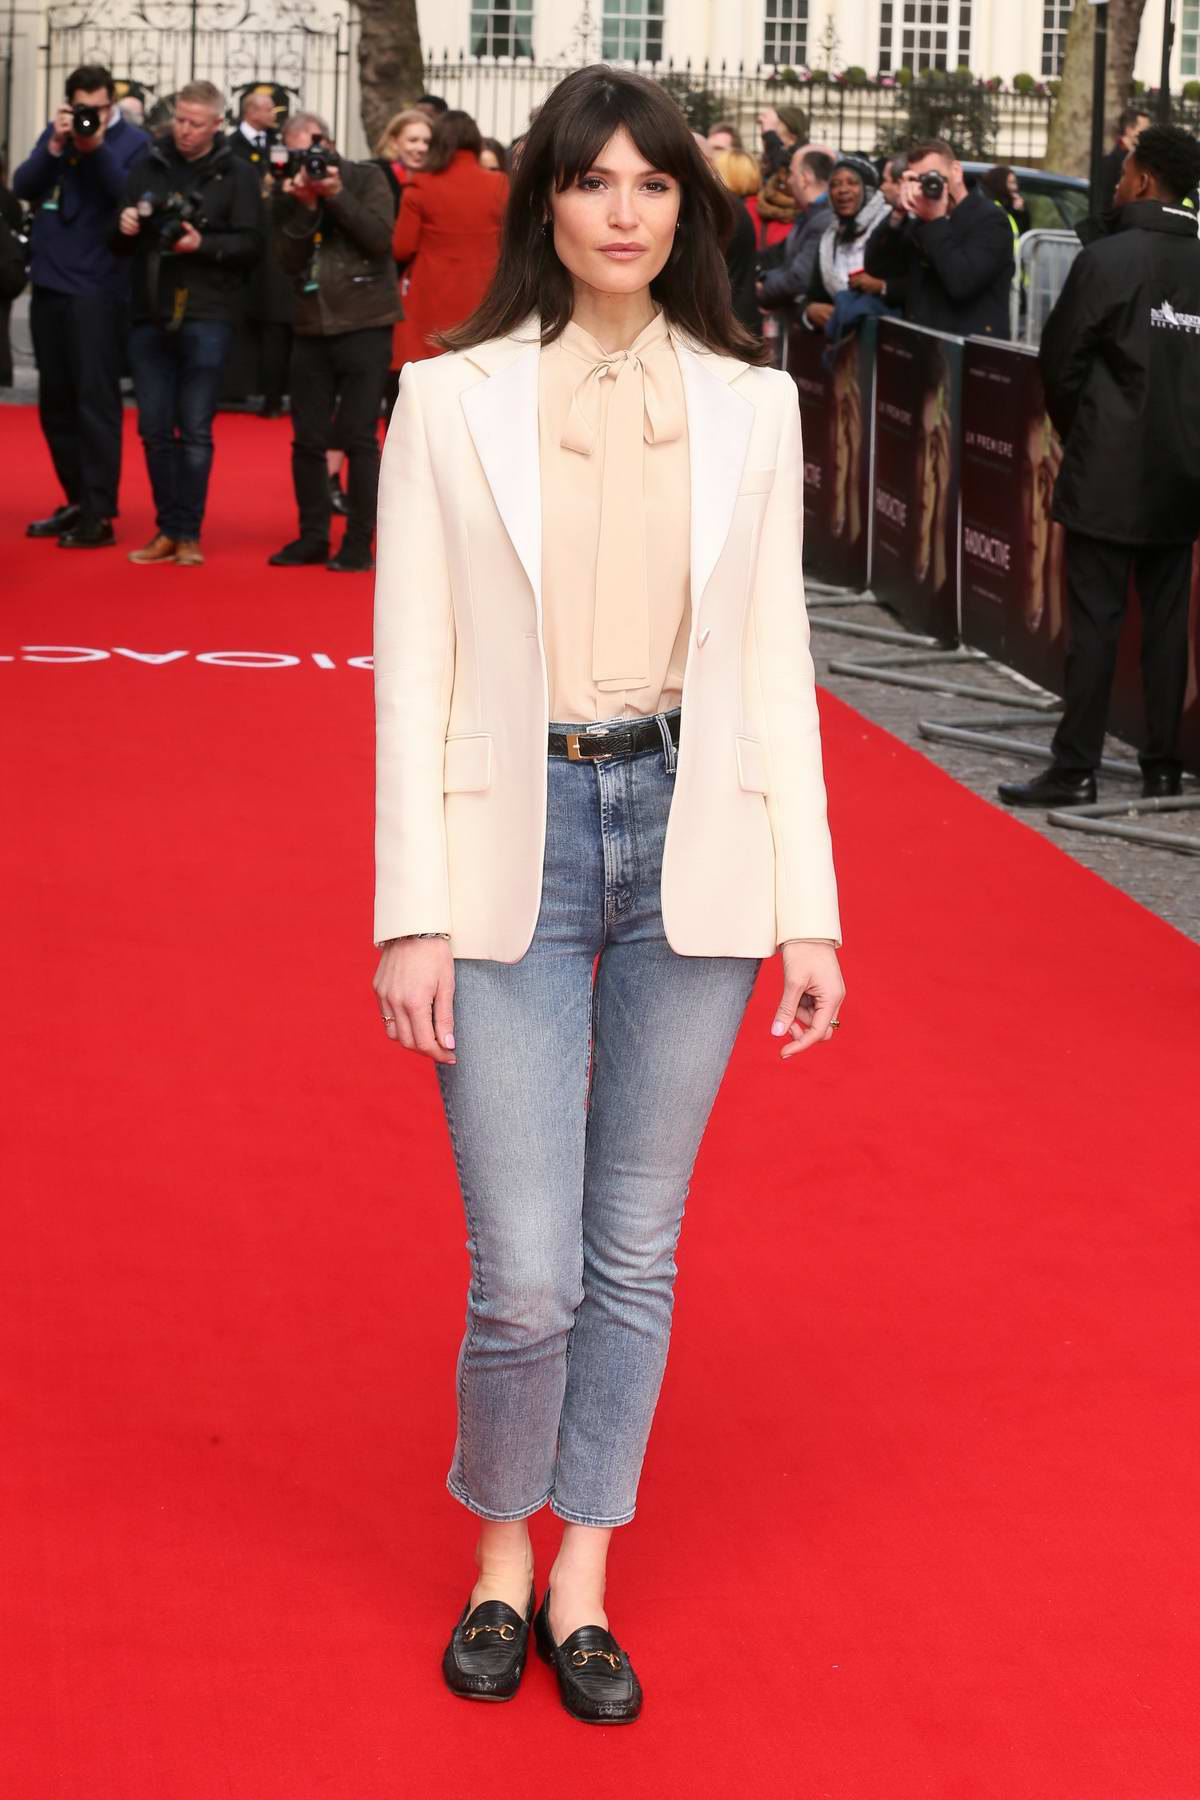 Gemma Arterton attends the Premiere of 'Radioactive' in London, UK